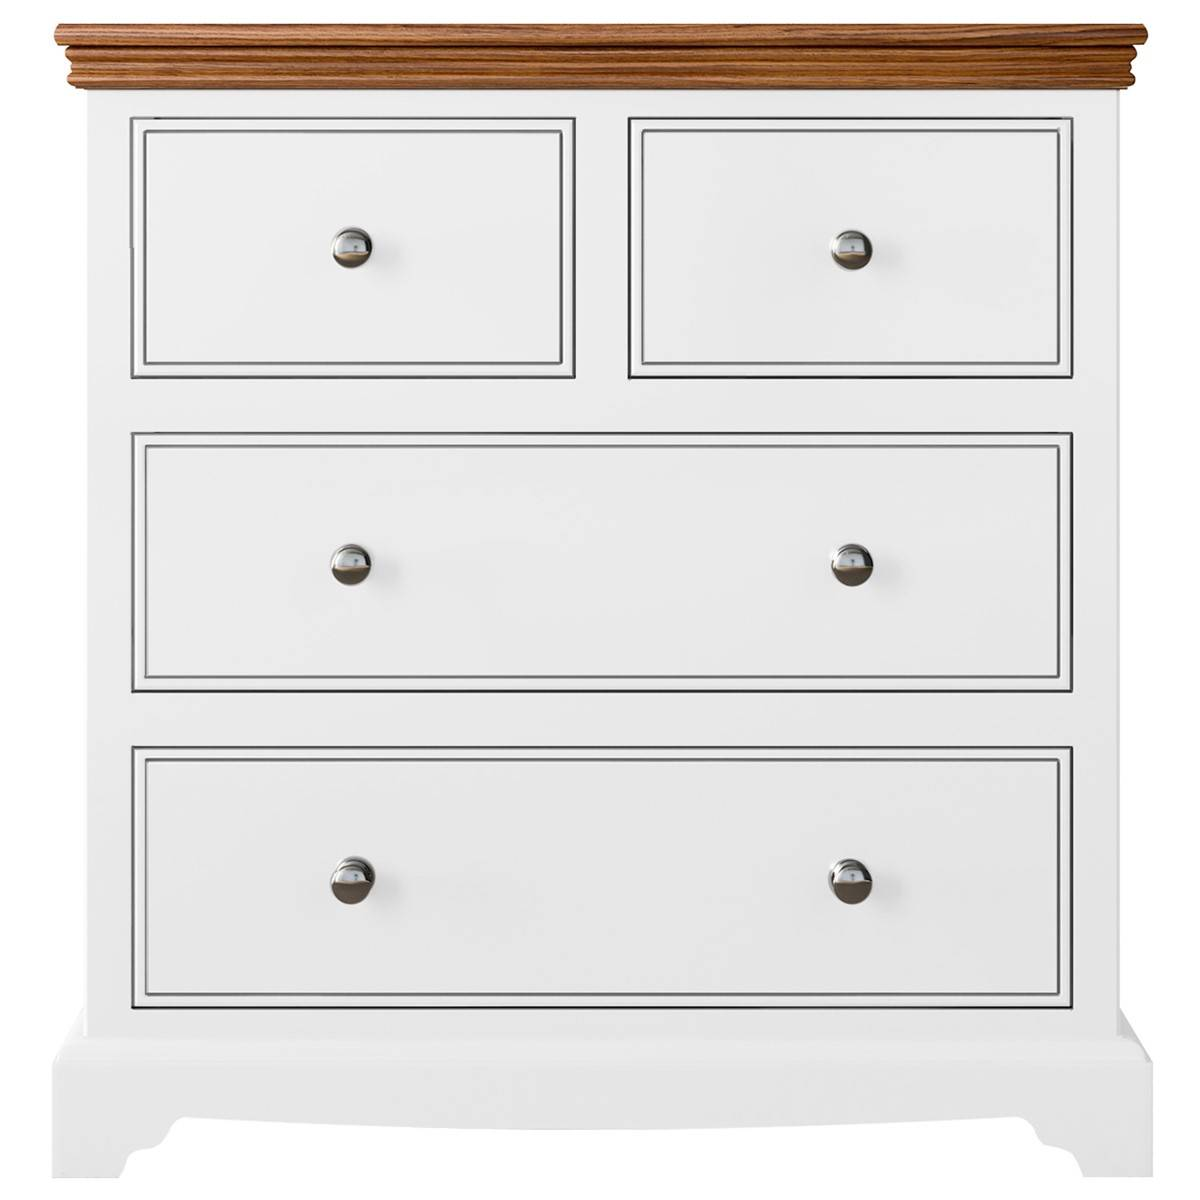 TCBC Inspiration Bedroom 2-2 Chest of Drawers - Bedroom Furniture